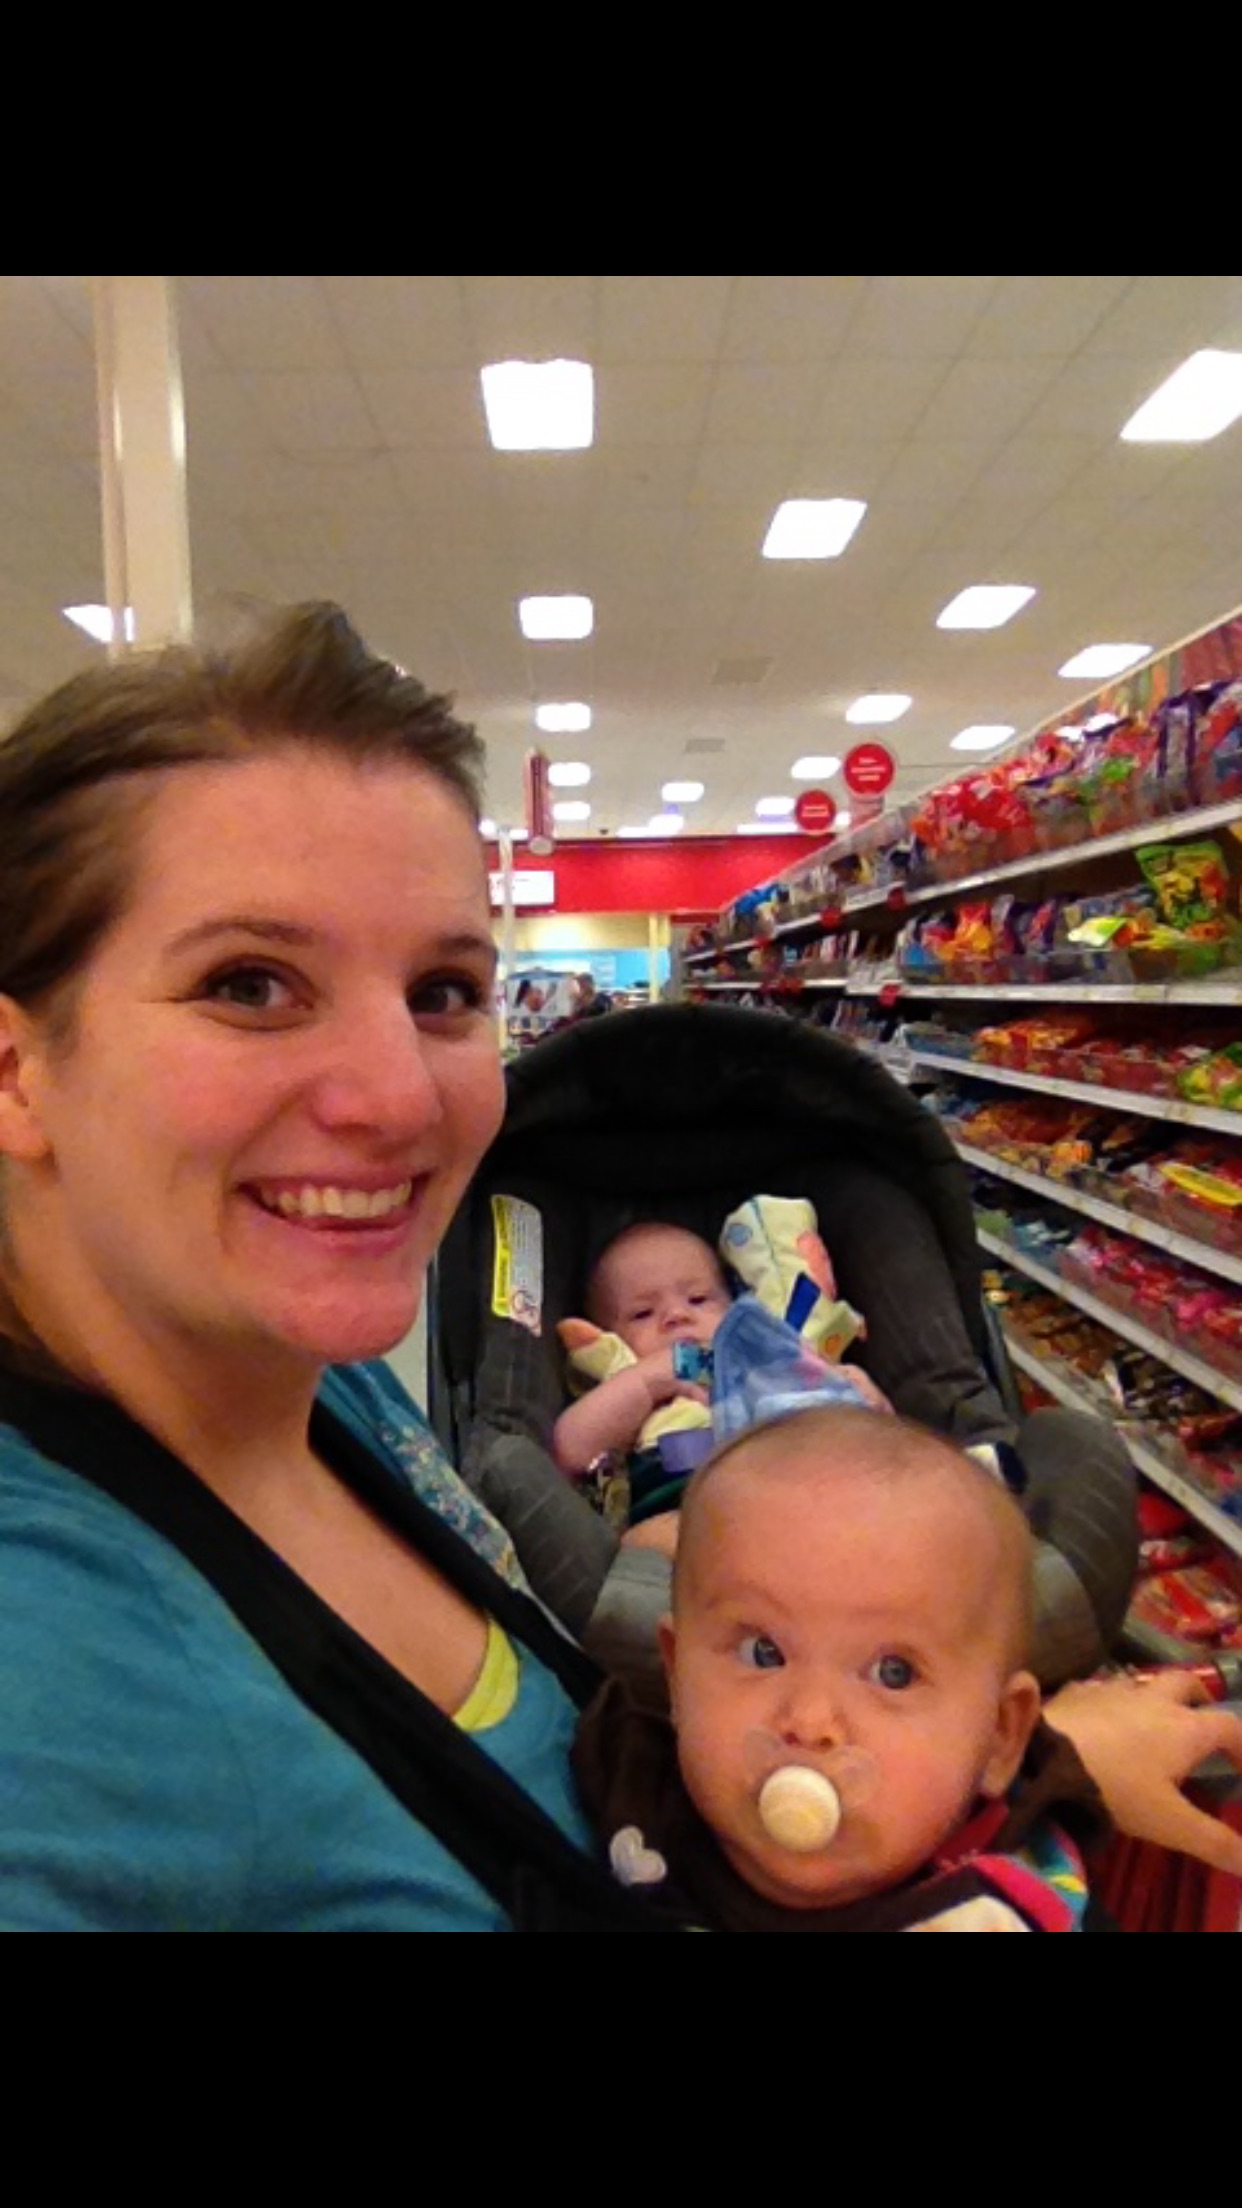 Lots of trips to target with these two. The amount of times we've been to Target together could be it's own blog post.